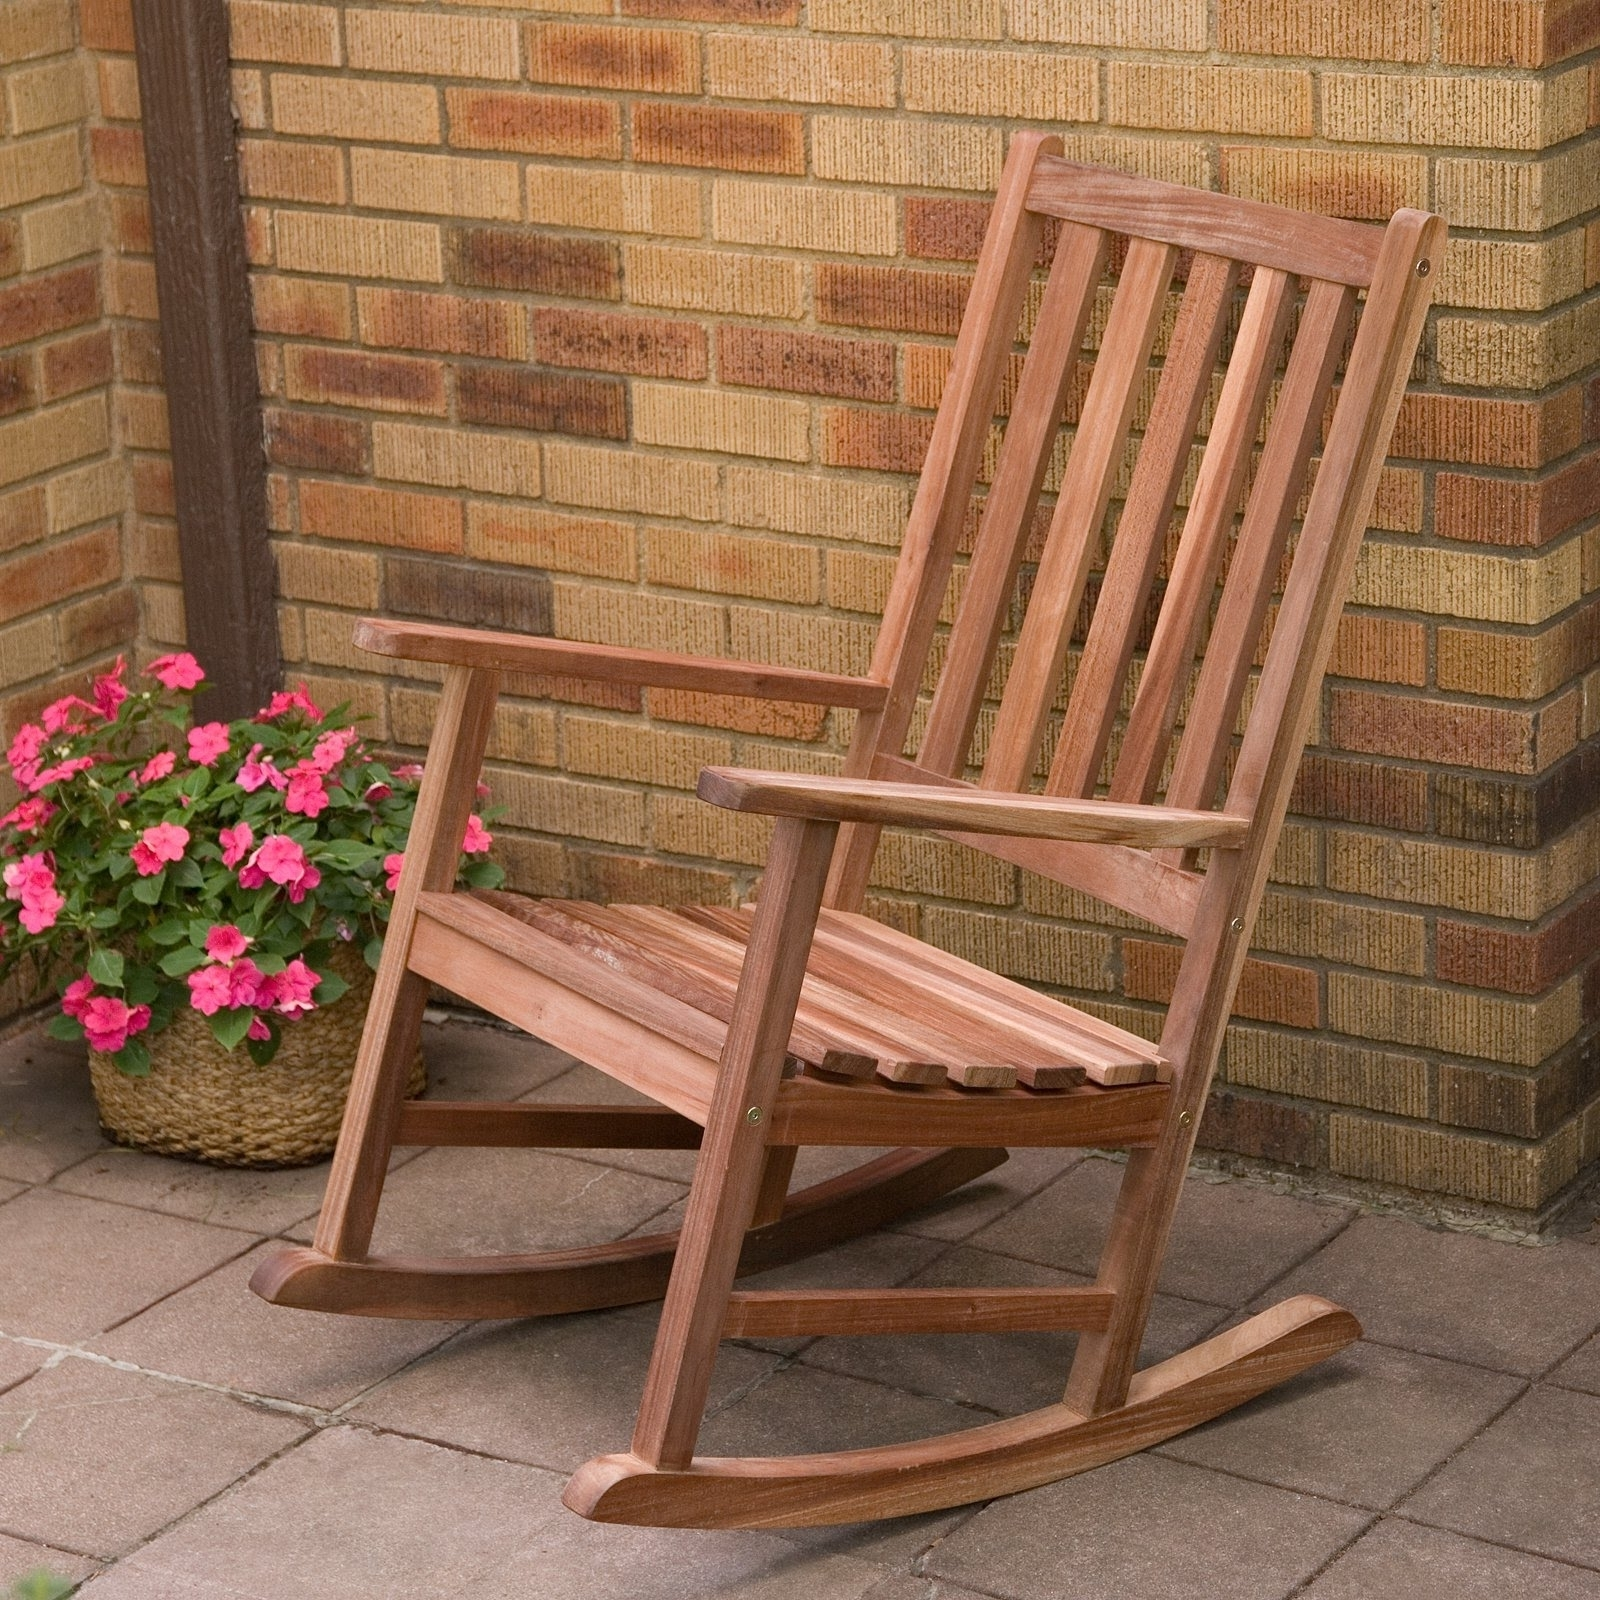 2017 Vintage Outdoor Rocking Chairs Regarding Patio & Garden : Rocking Chairs For Outdoors Amazing Amazon Merry (View 6 of 15)